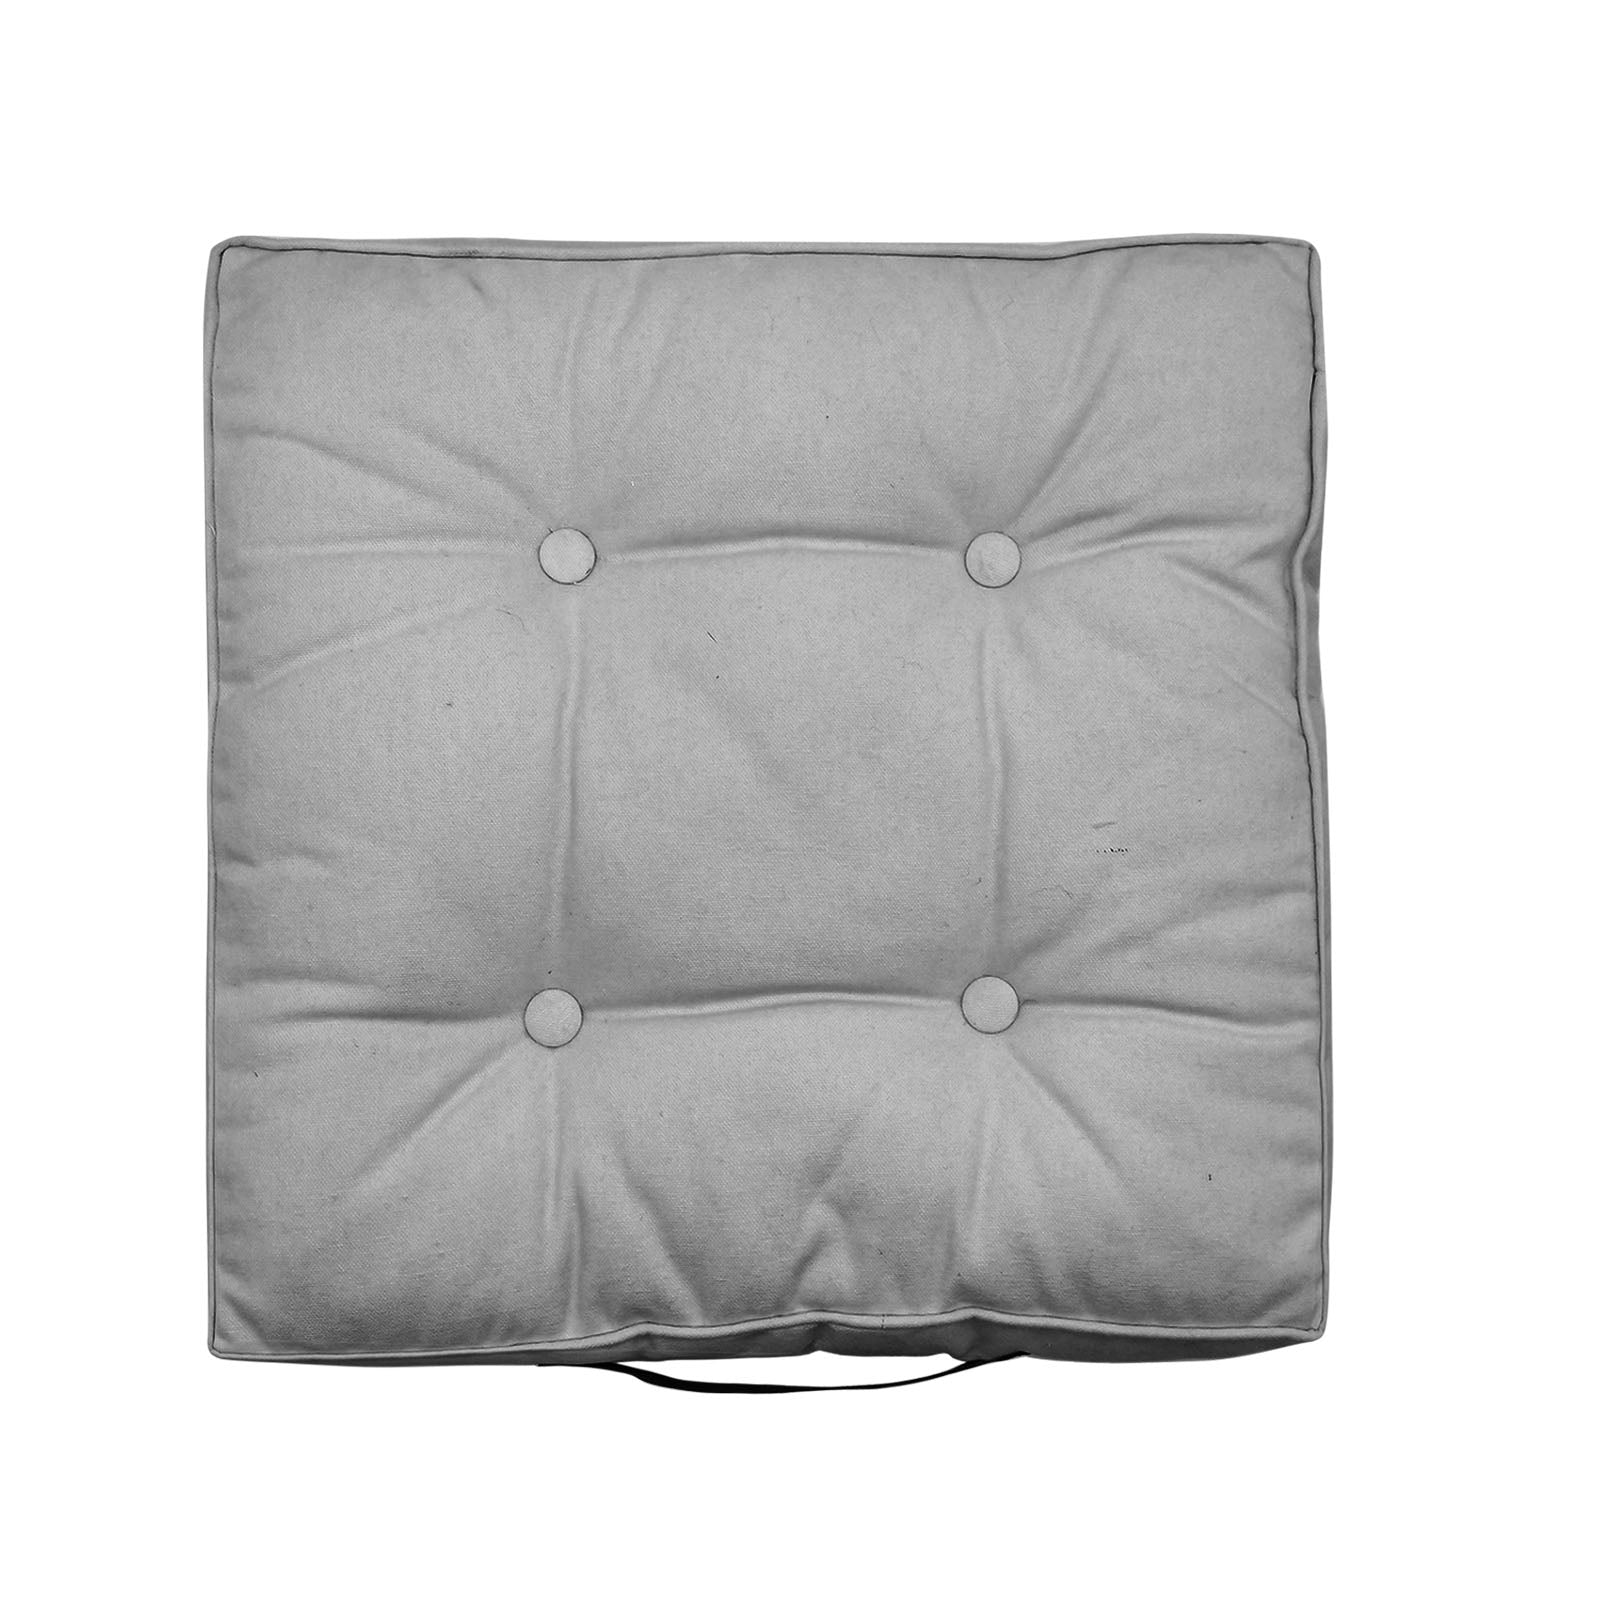 Chair/floor  pad  244-CSFB-425-Grey